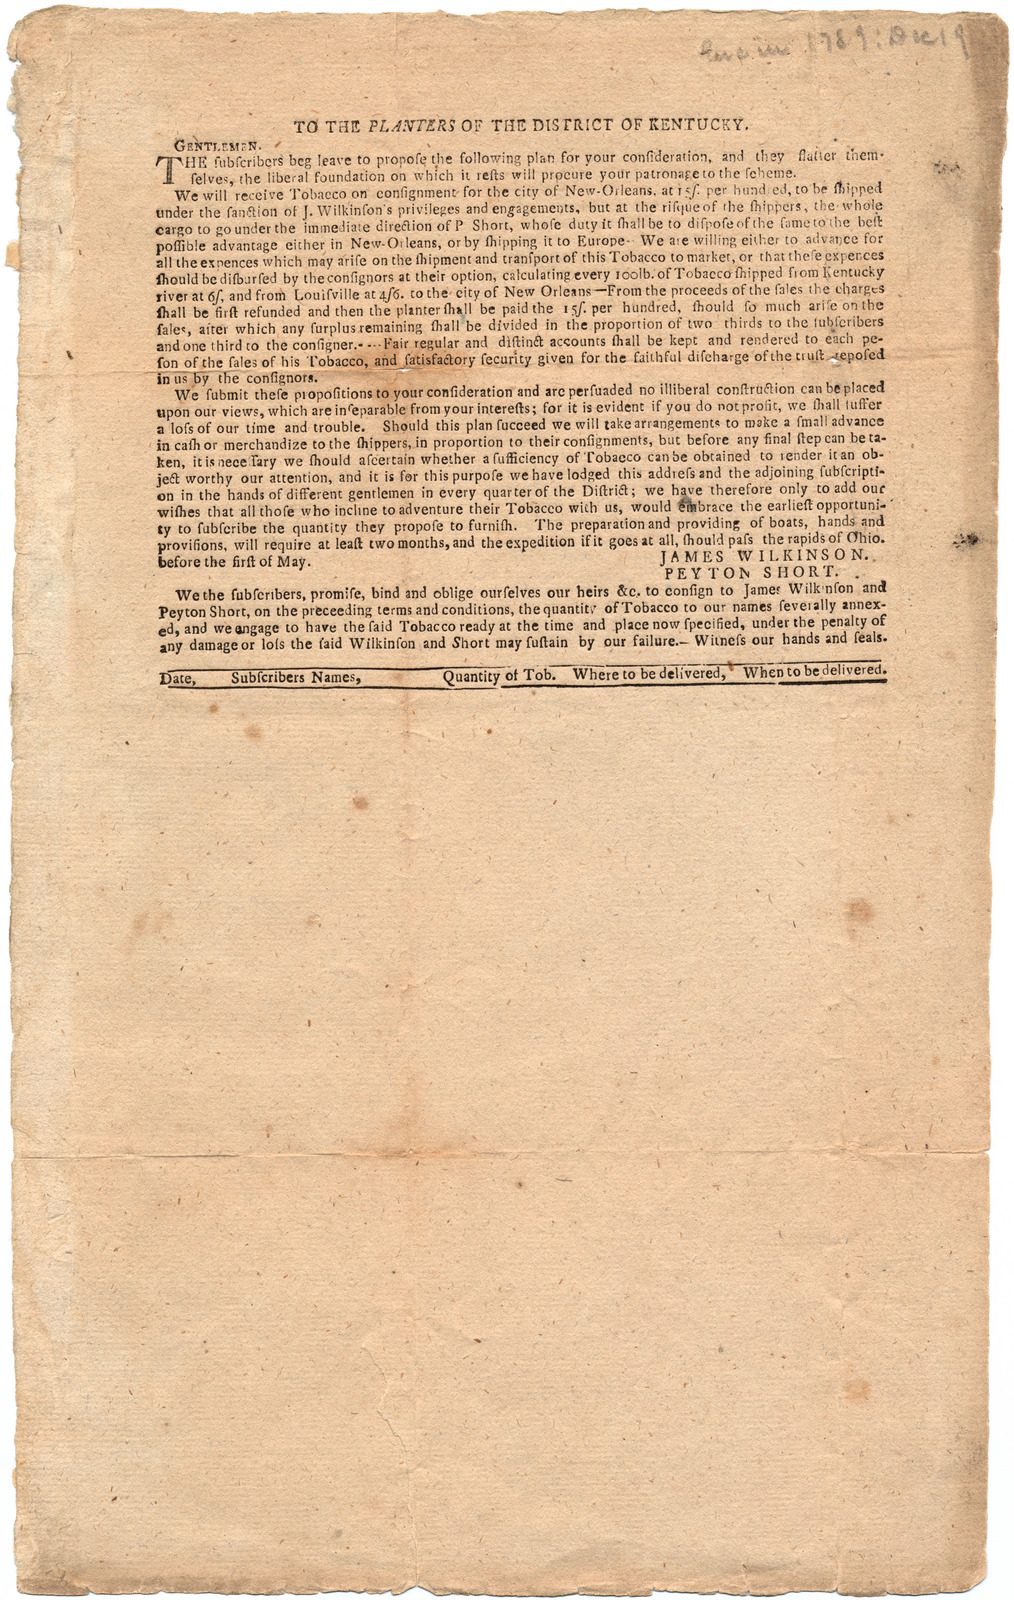 Subscription of tobacco shipments to New Orleans